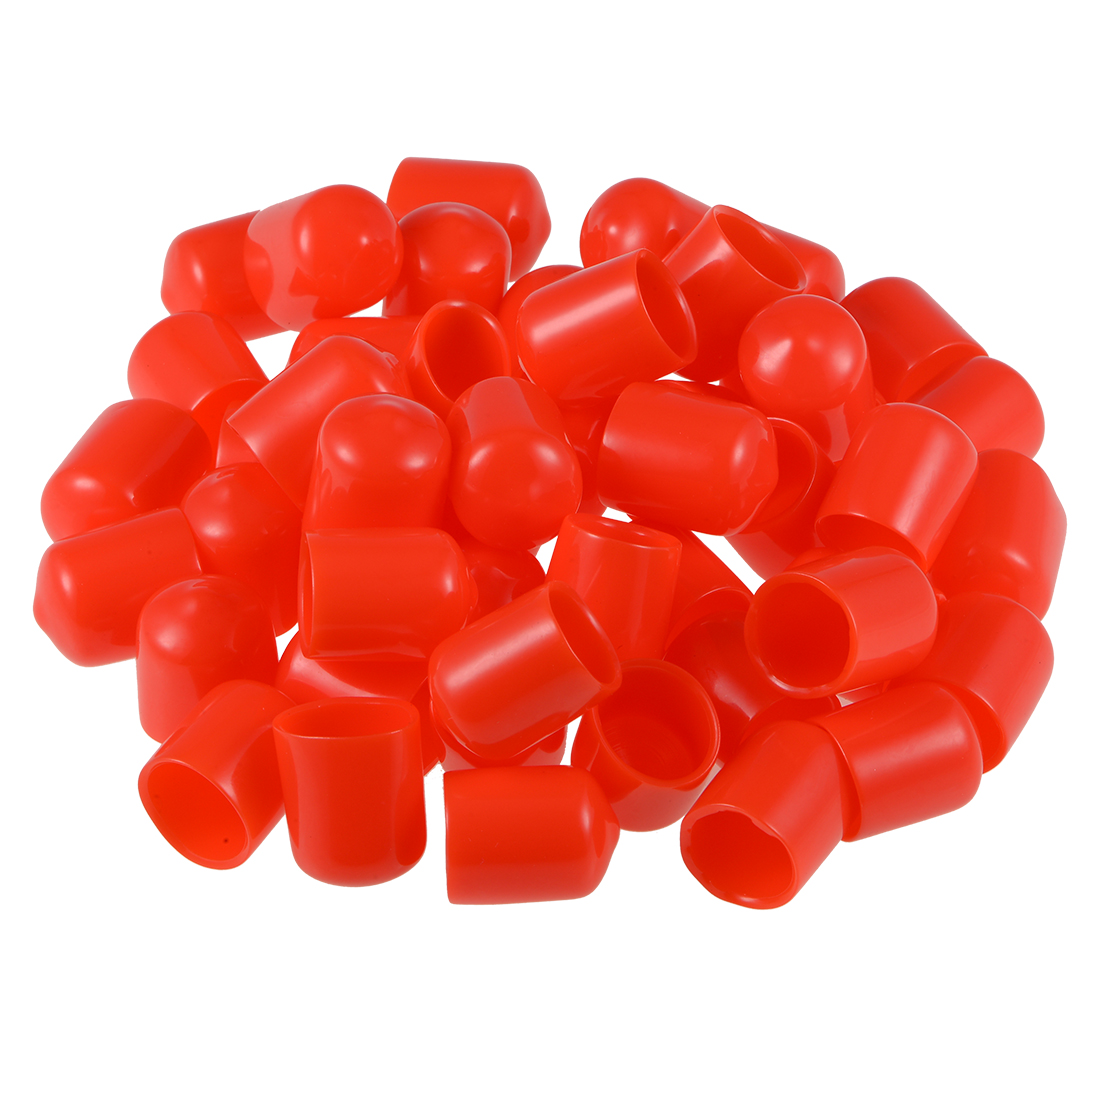 Screw Thread Protectors, 14mm ID 22mm Length Round End Cap Cover Red 50pcs